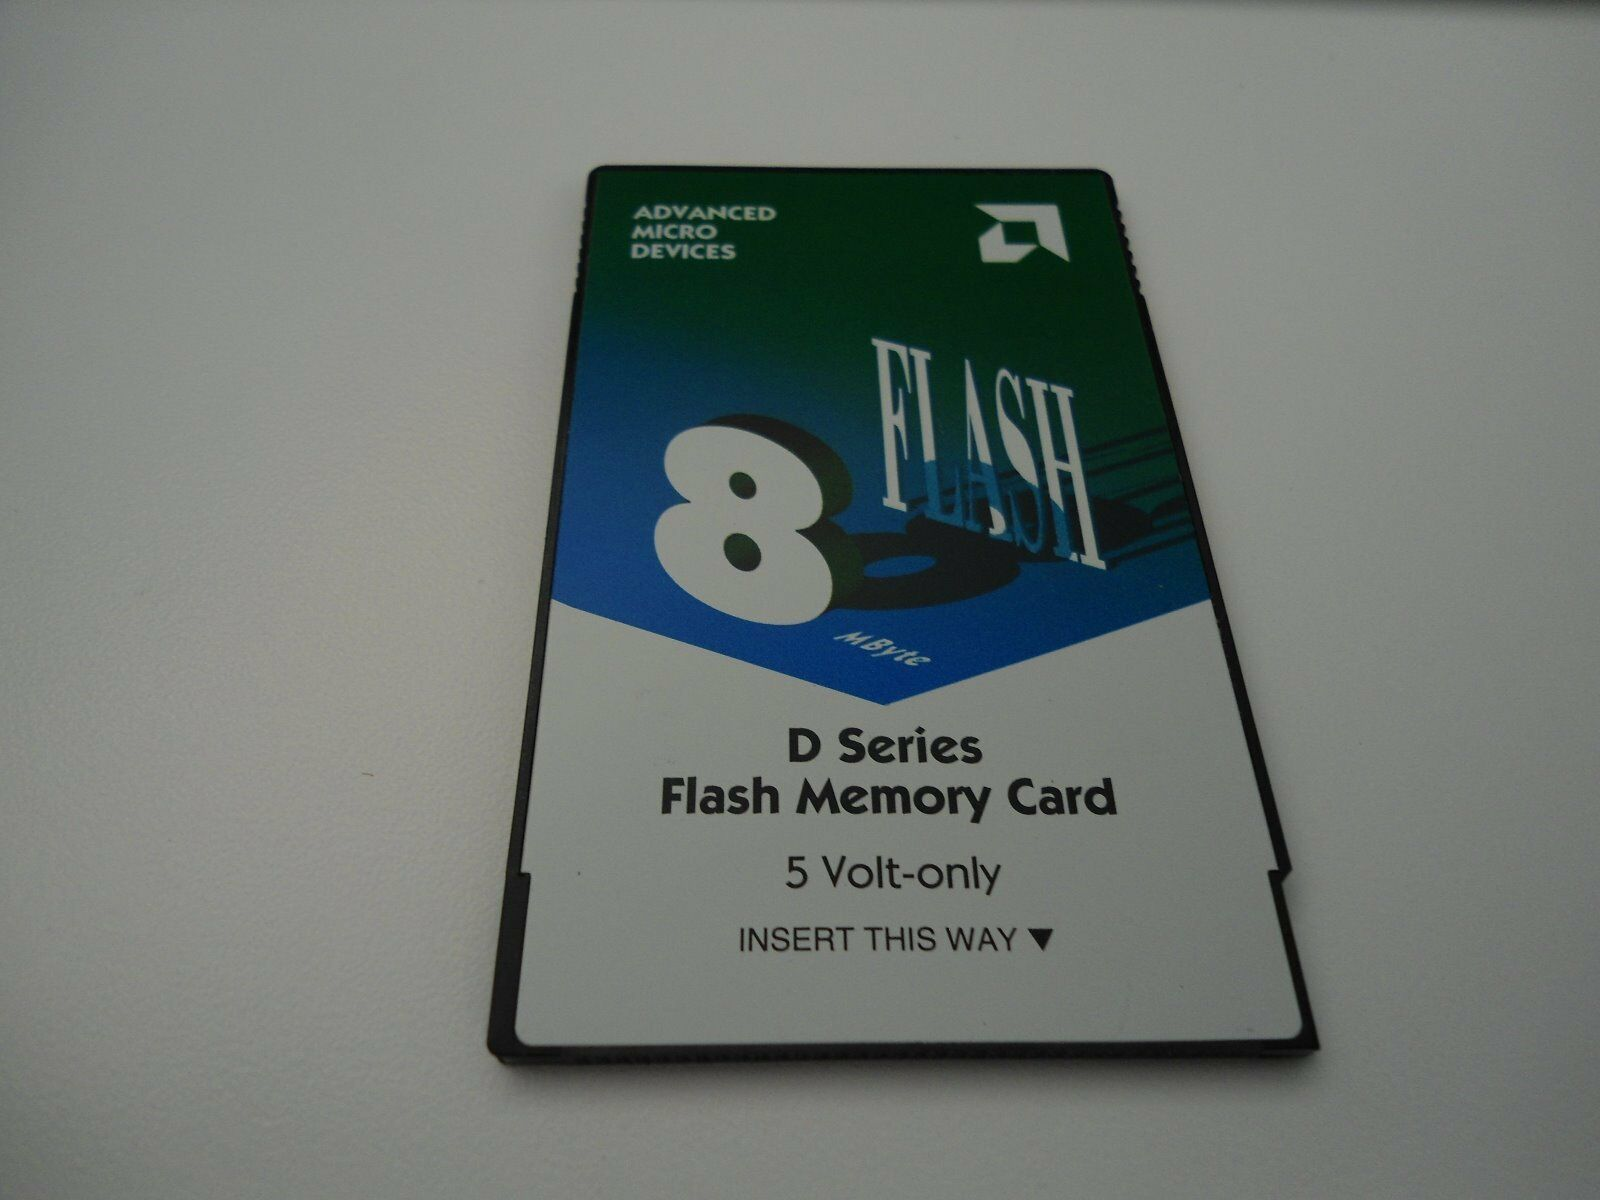 Advanced Micro Devices D Series 8MB Flash Memory Card